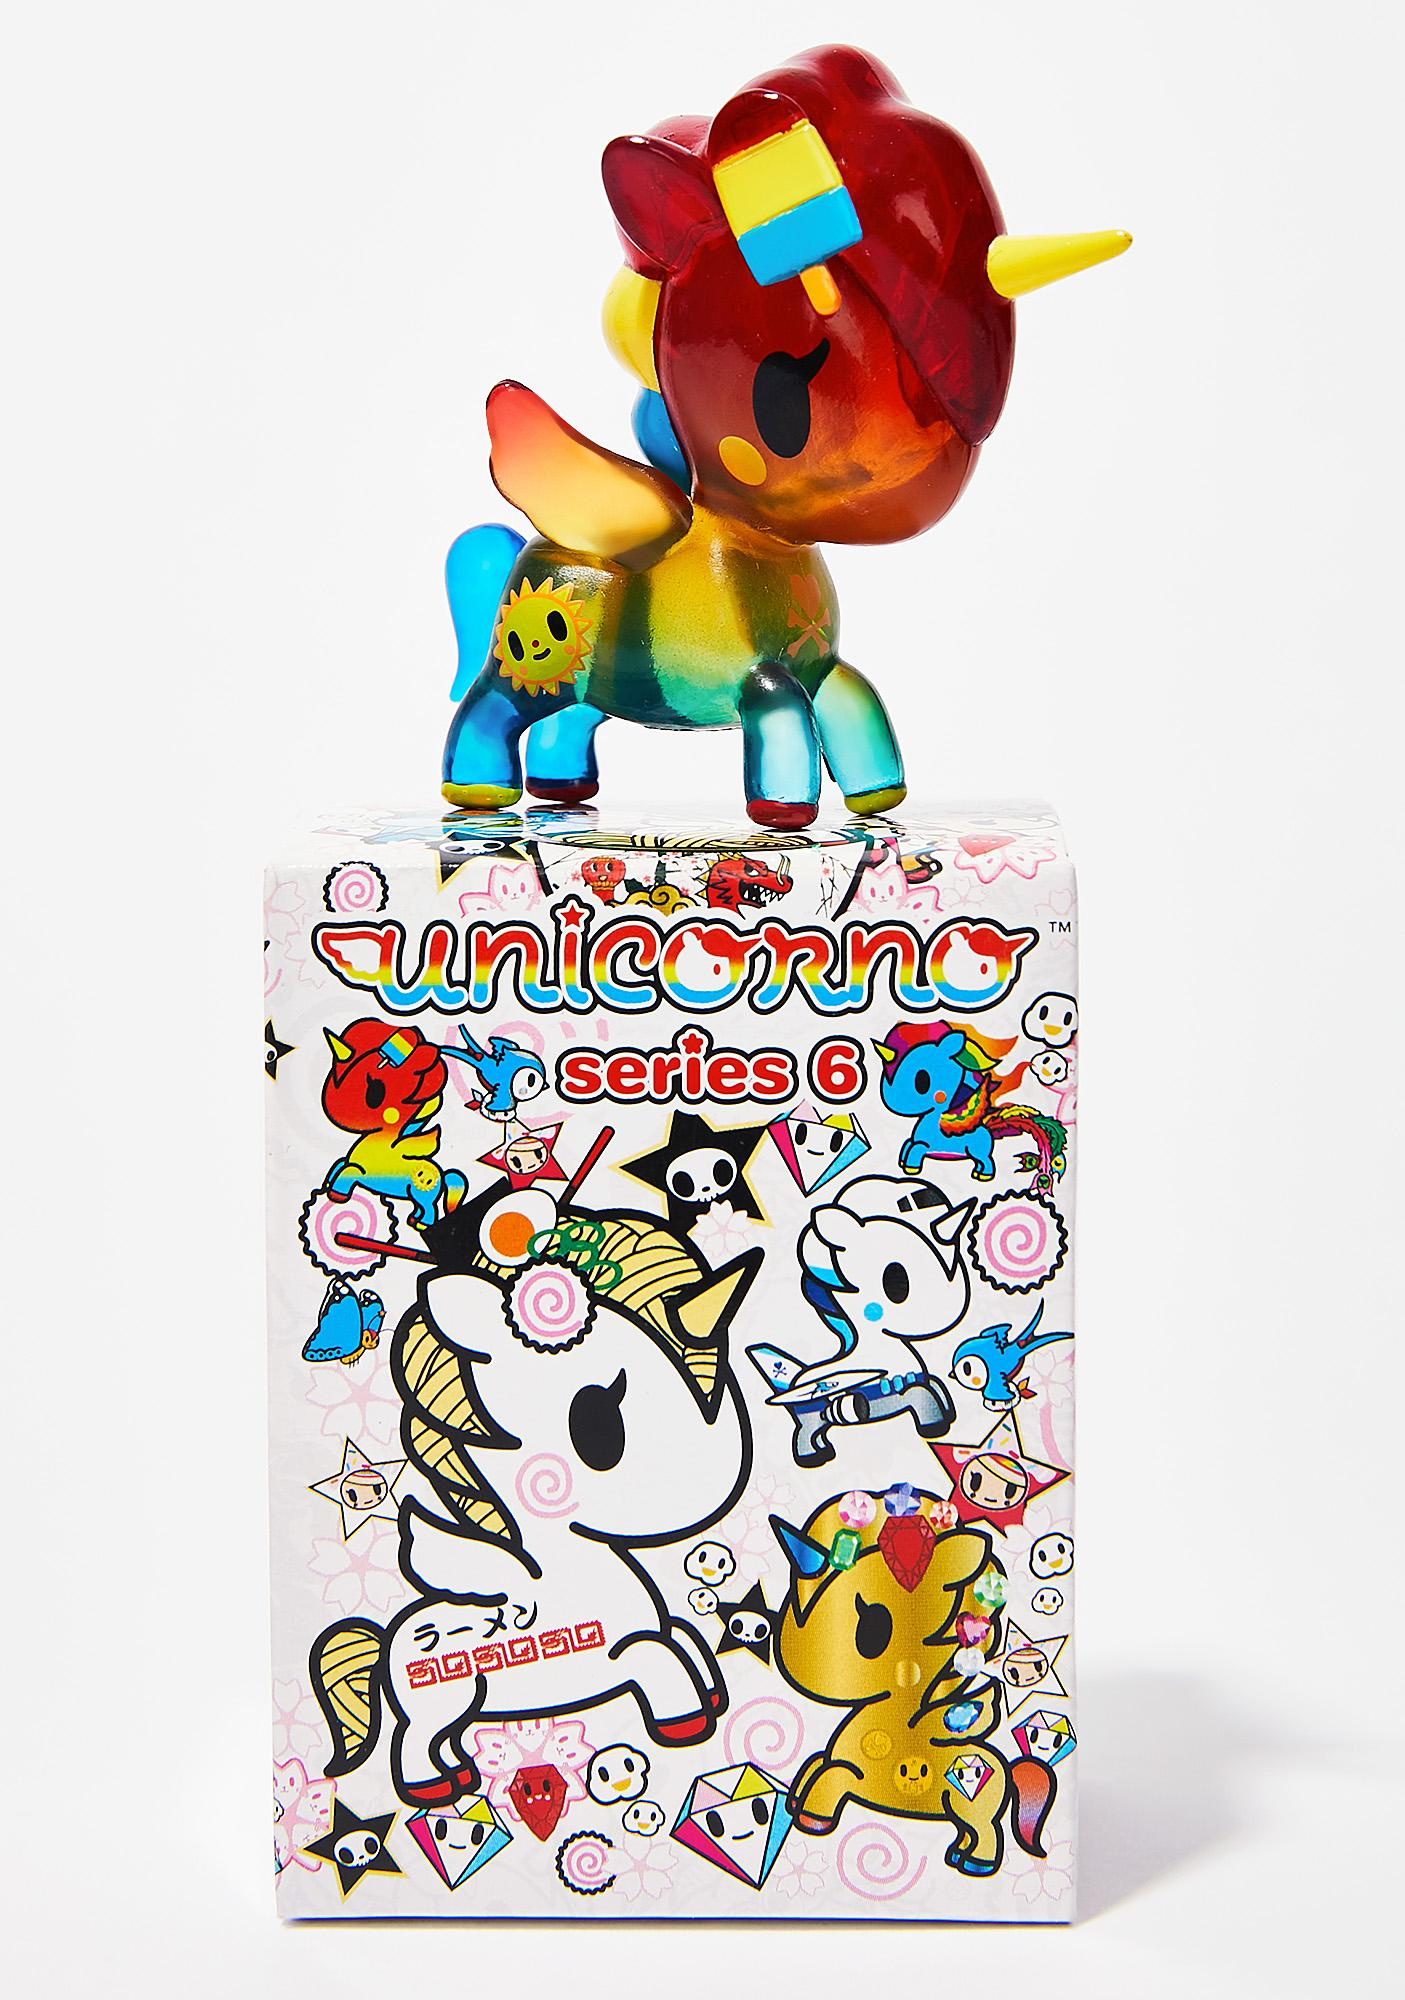 Tokidoki Unicorno Series 6 Blind Box